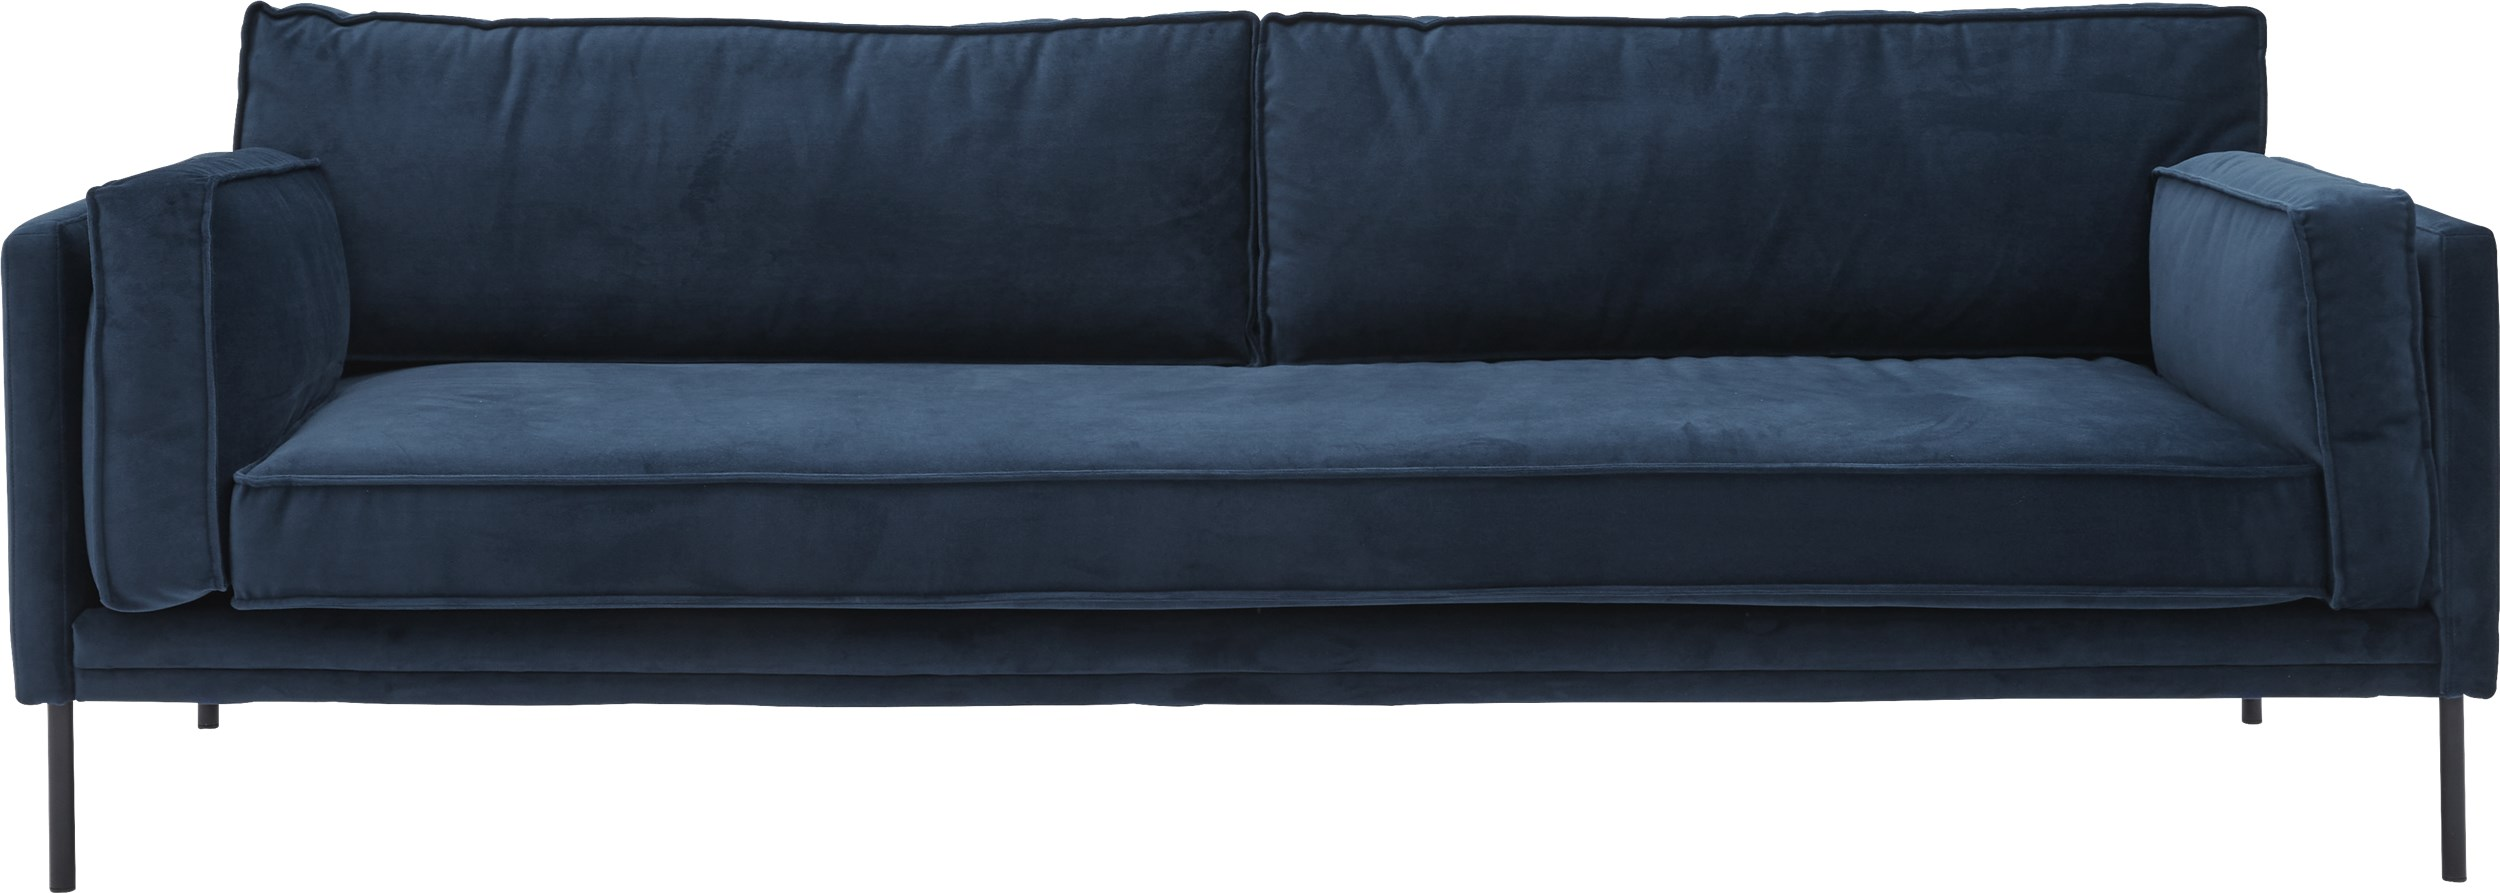 Keep 3 pers Sofa - Toro 6836 Navy stof og ben i sort metal